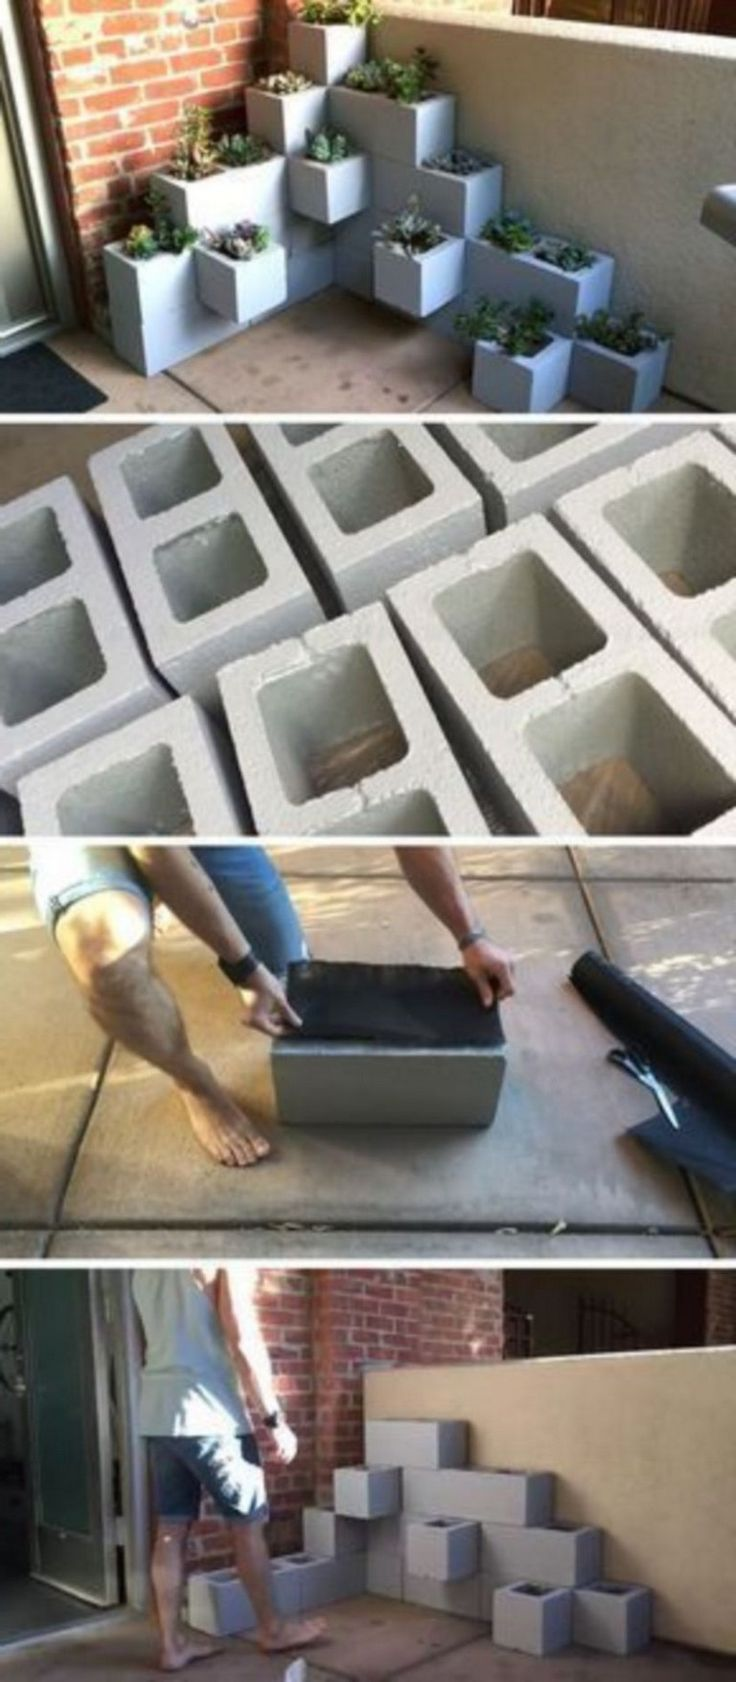 35+ Creative DIY Cinder Block Ideas to Decorating Your Outdoor Space #betonblockgarten Assembling a Cinder Block Garden is among the very truly effective approaches to utilize a minimum amount of space to Boost your own vegetables. #cinderblocks #outdoorideas #betonblockgarten